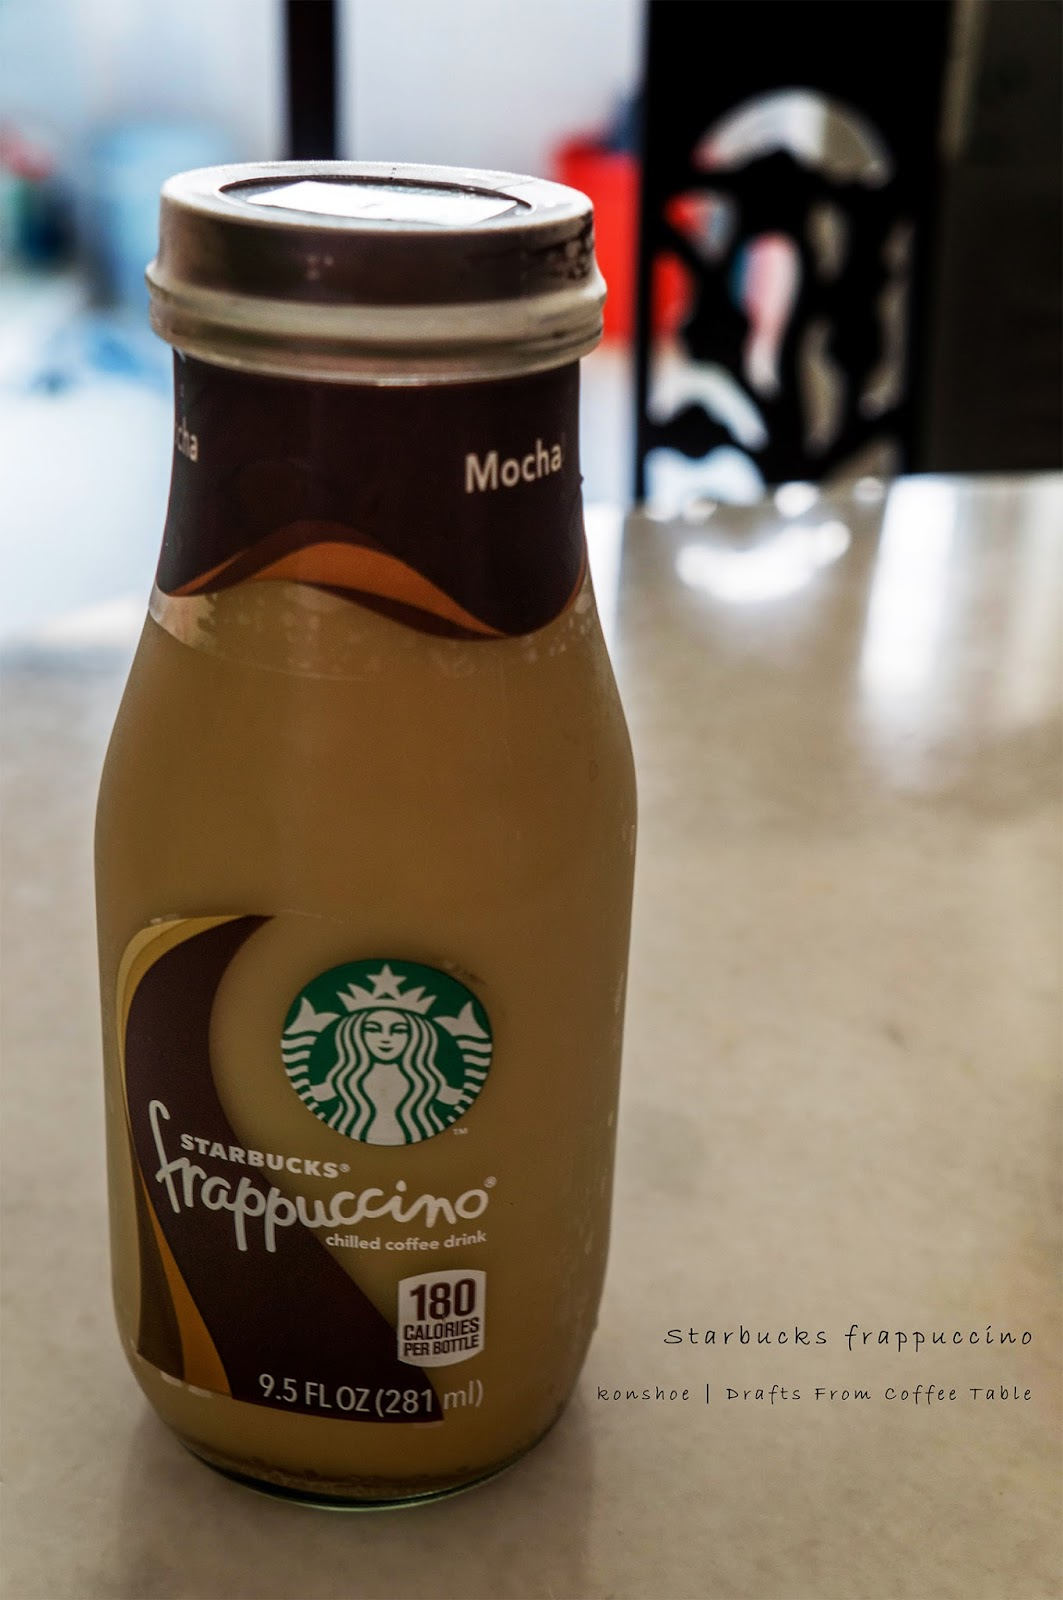 Starbucks Coffee Mocha Bottle